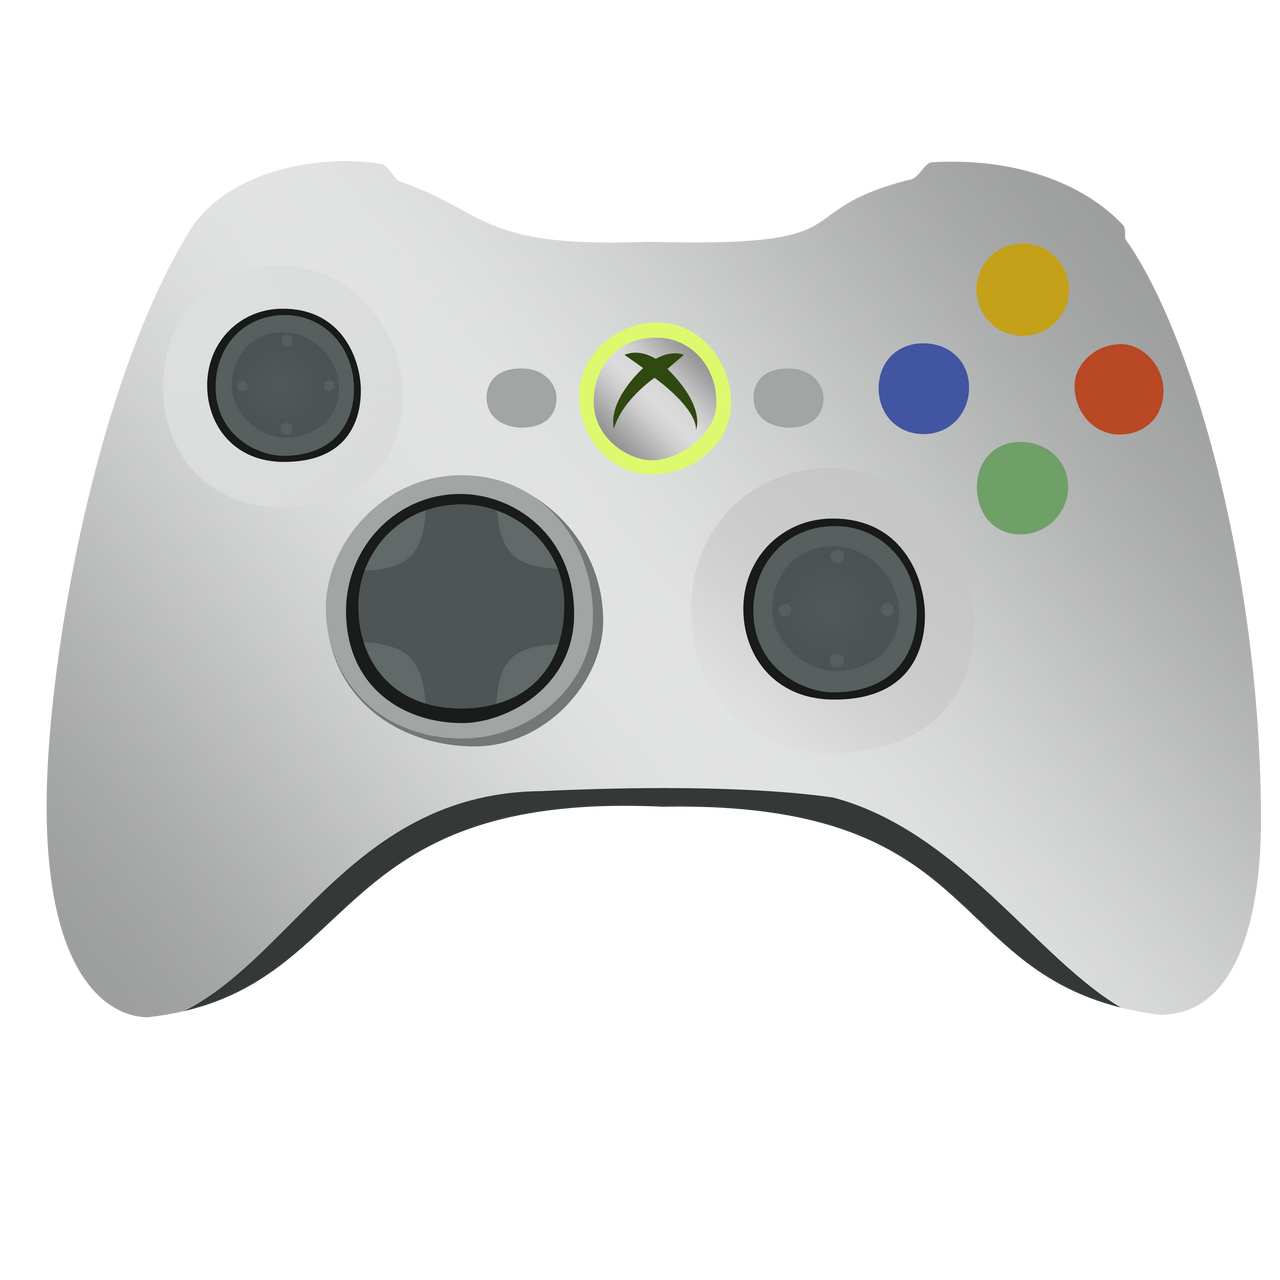 D Line Drawings Xbox : Xbox controller vector by ikillyou on deviantart